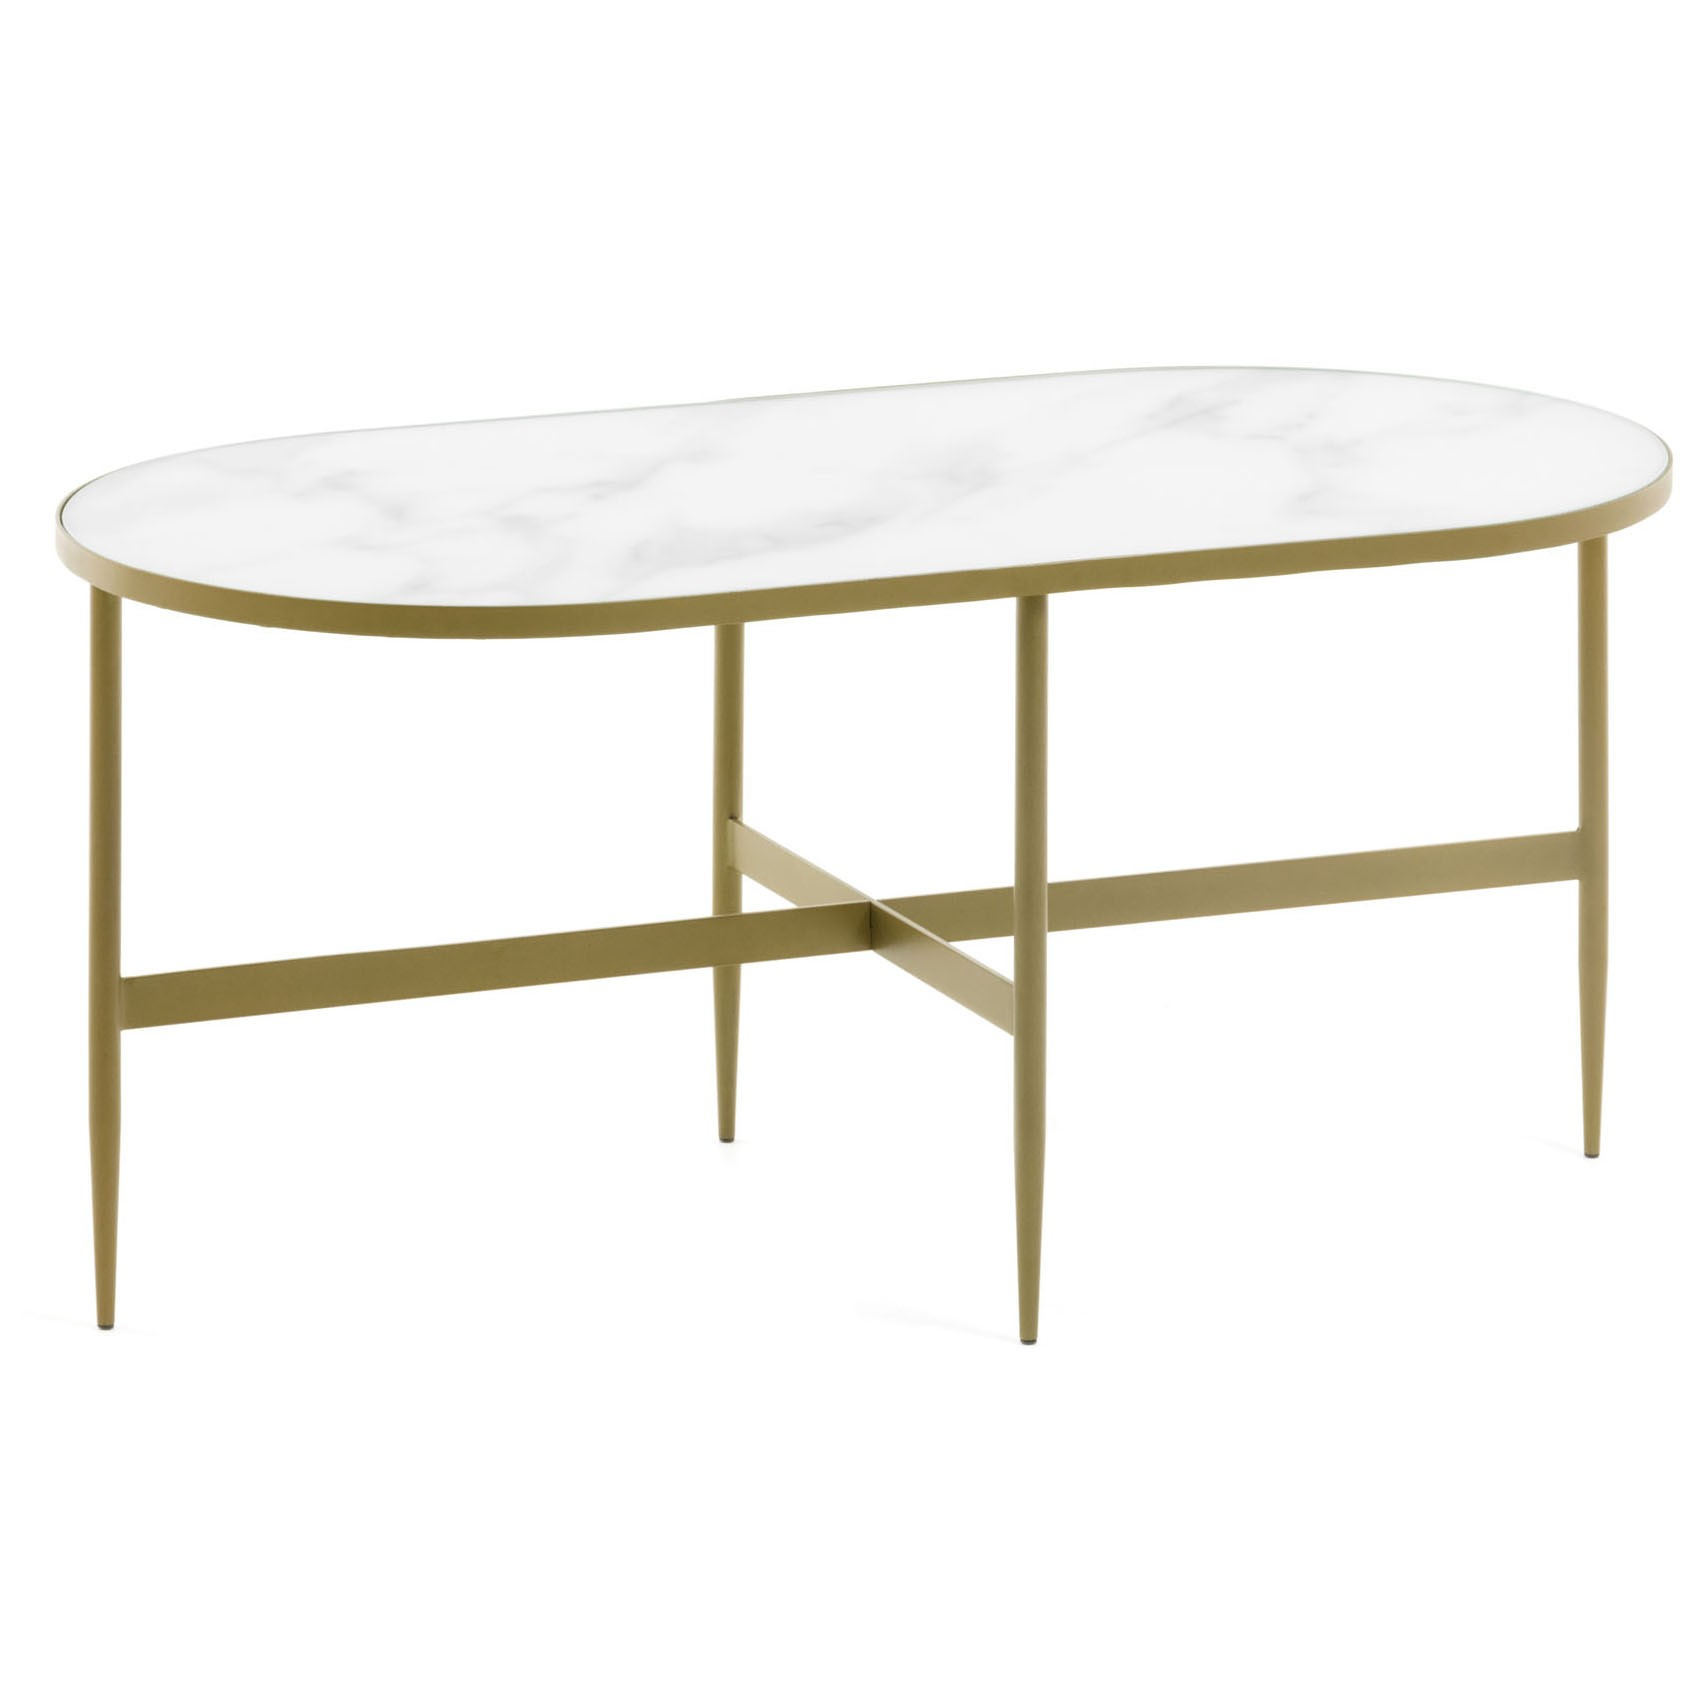 Cara Glass Top Metal Oval Coffee Table, 100cm